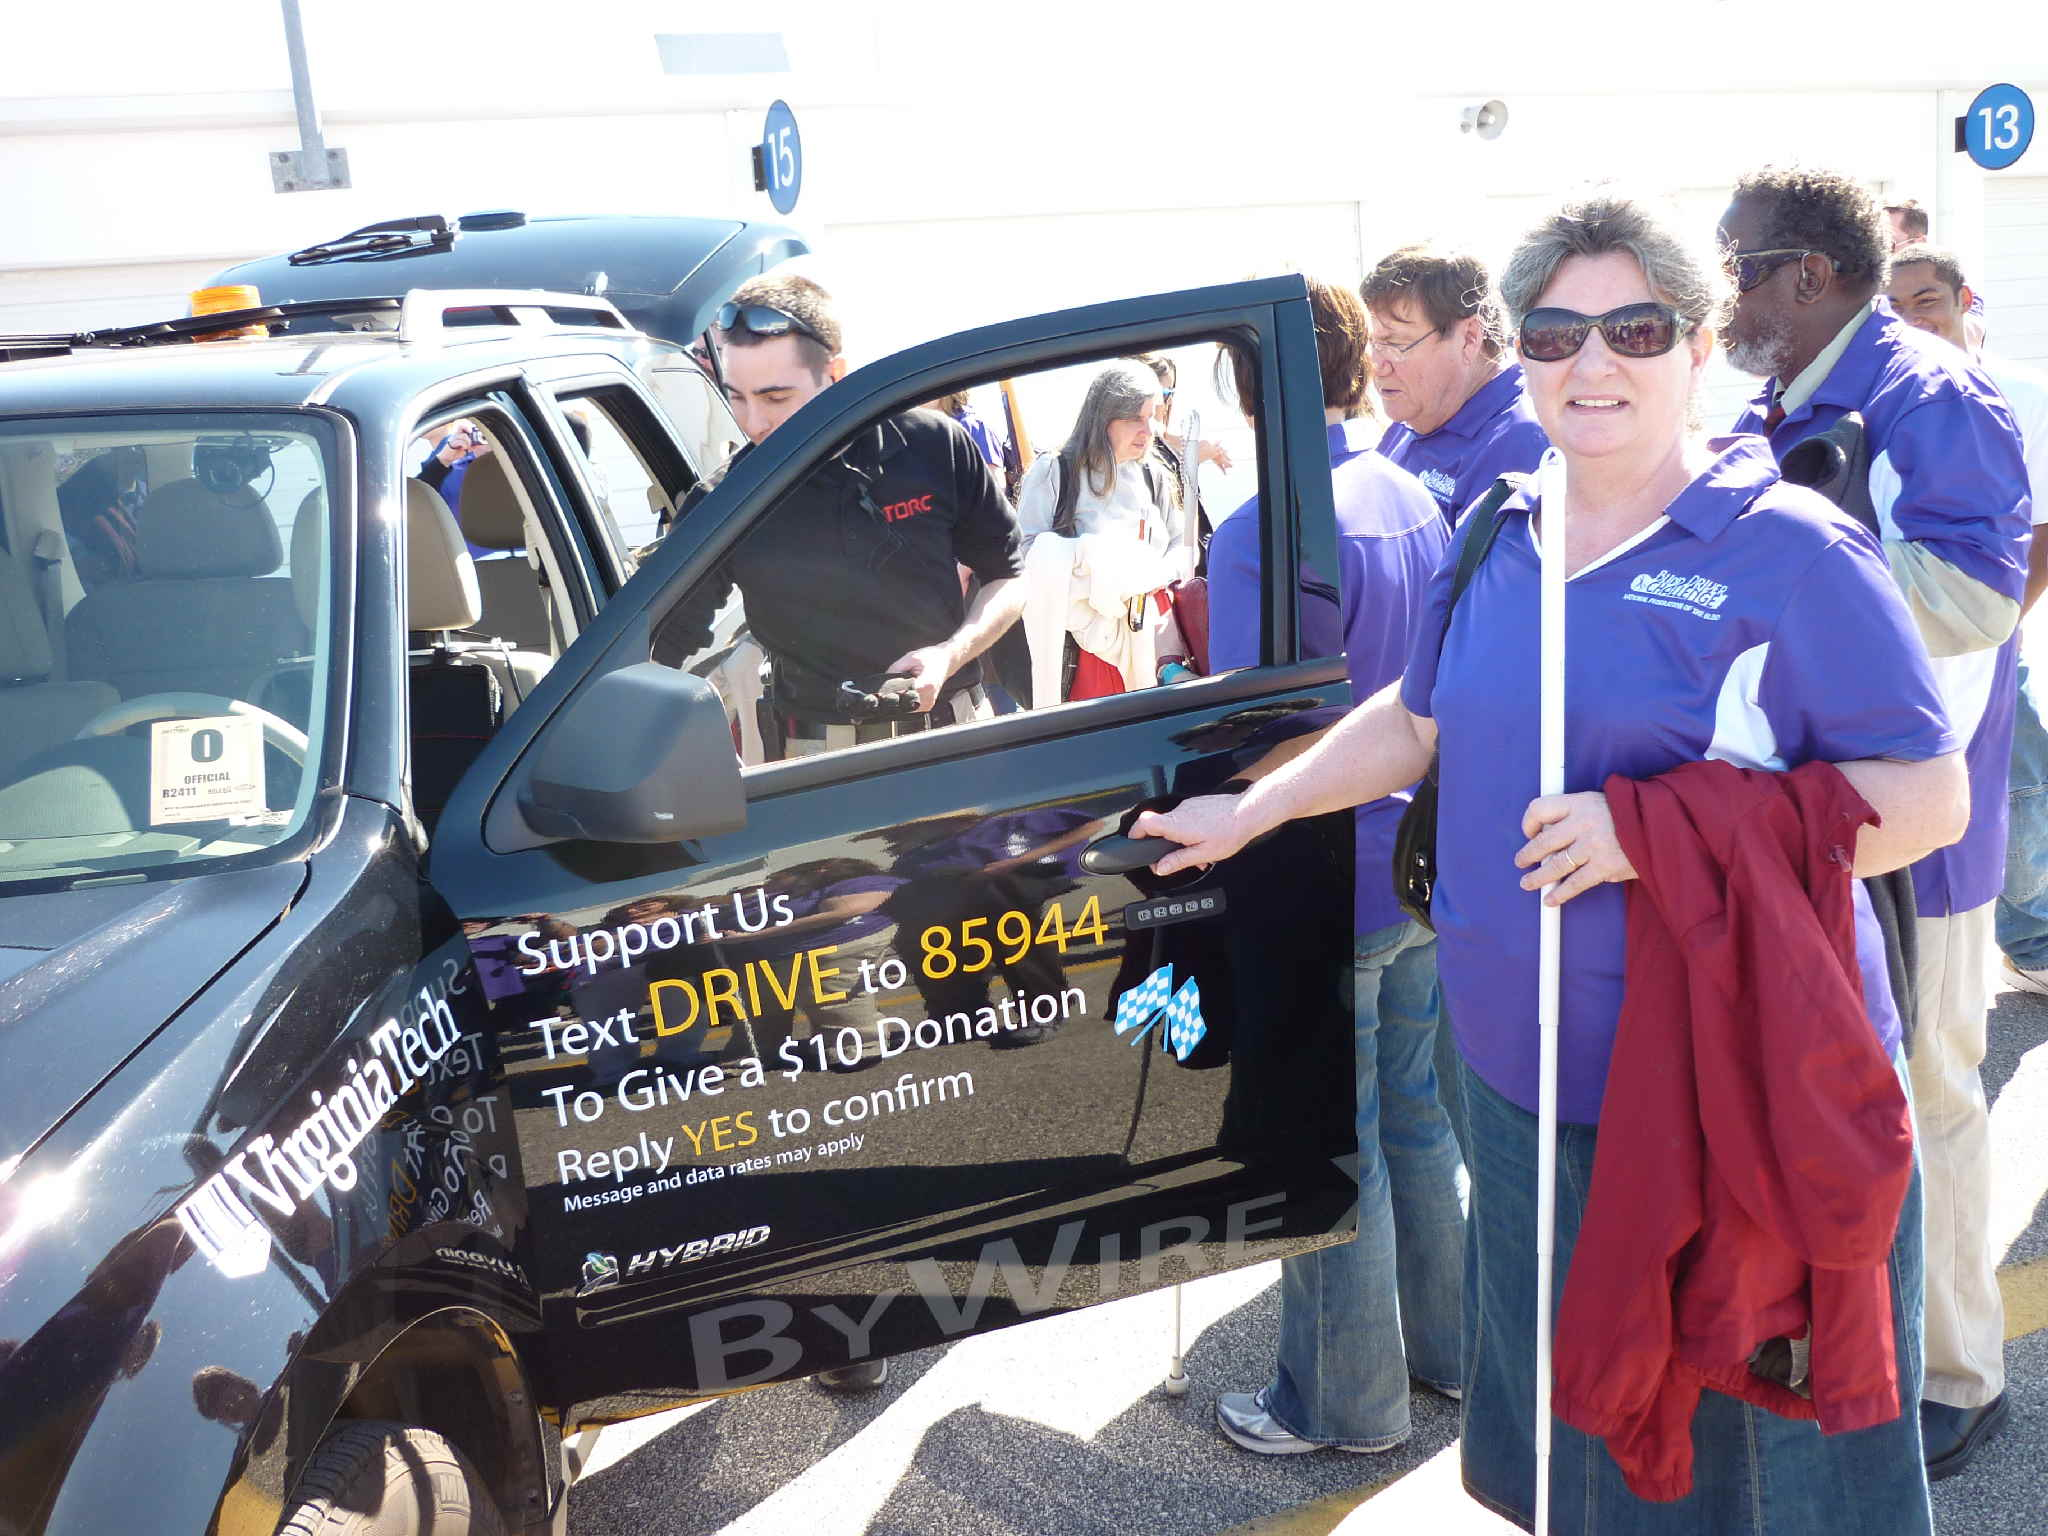 Pamela Glisson holding the door of an SUV challenge vehicle